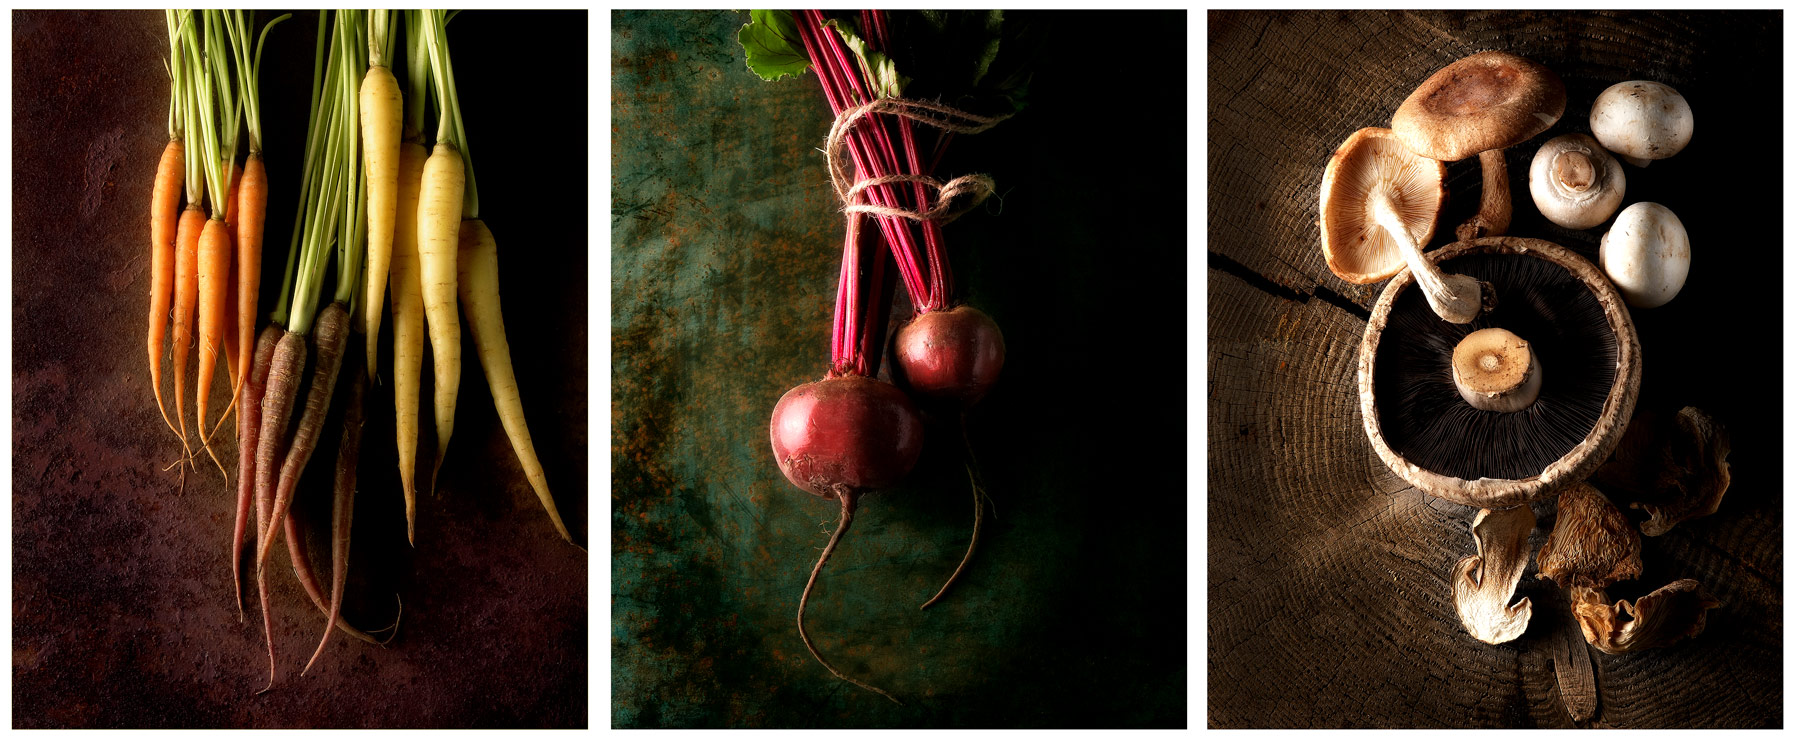 Red Productions Product & Still Life Photography The Food Emporium Vegetables